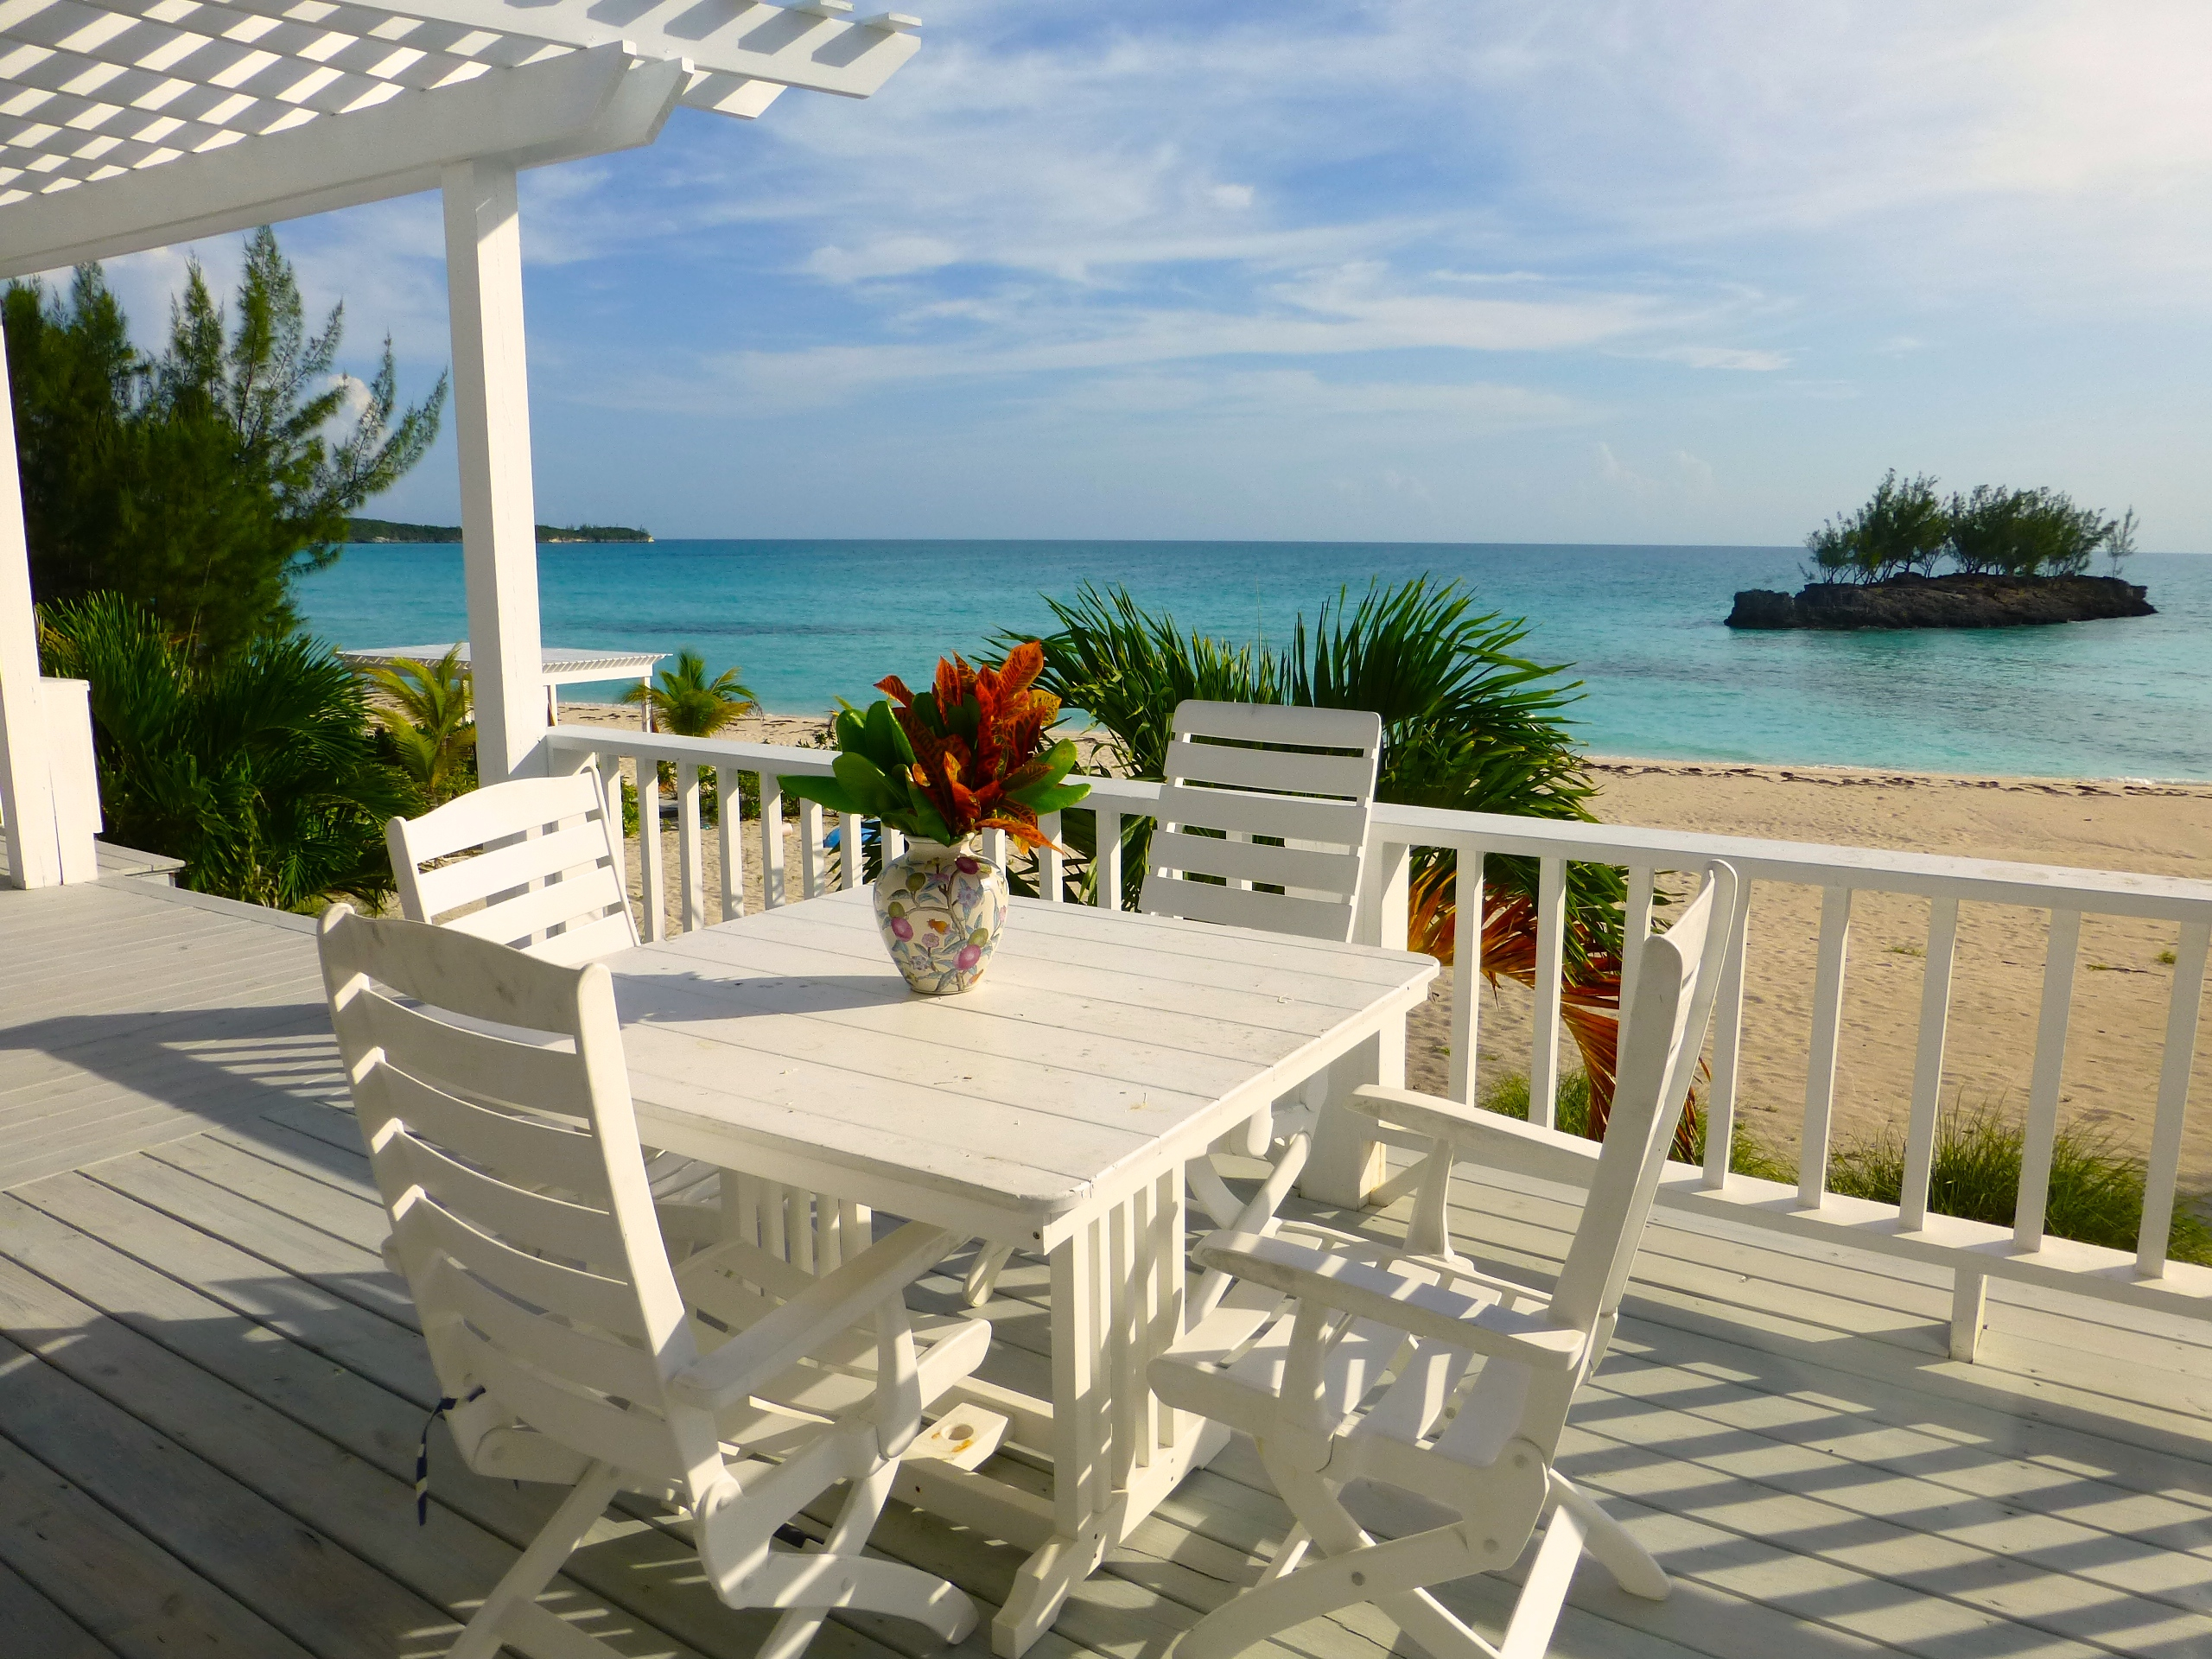 Maison unifamiliale pour l Vente à A Beach House for an Incomparable Island Lifestyle. Gregory Town, Eleuthera Bahamas